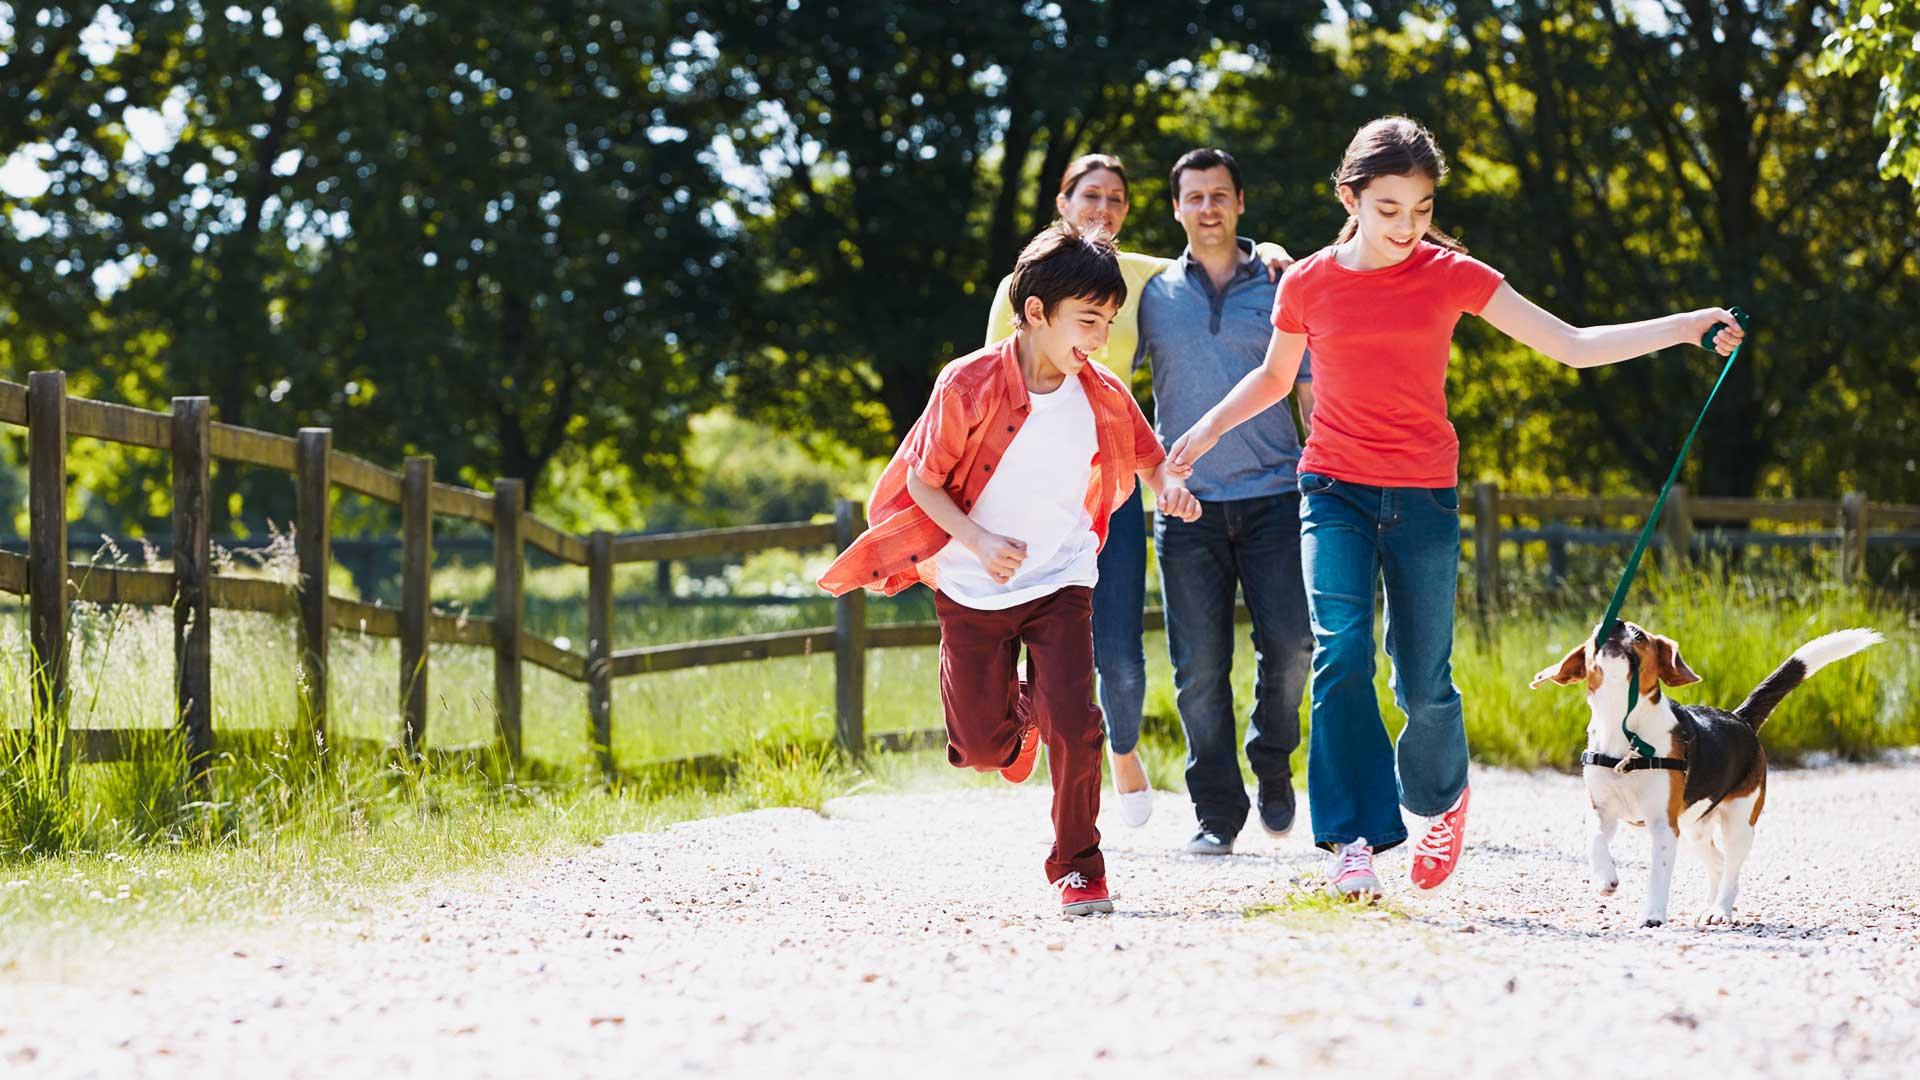 10 Creative Ways to Keep Kids Active